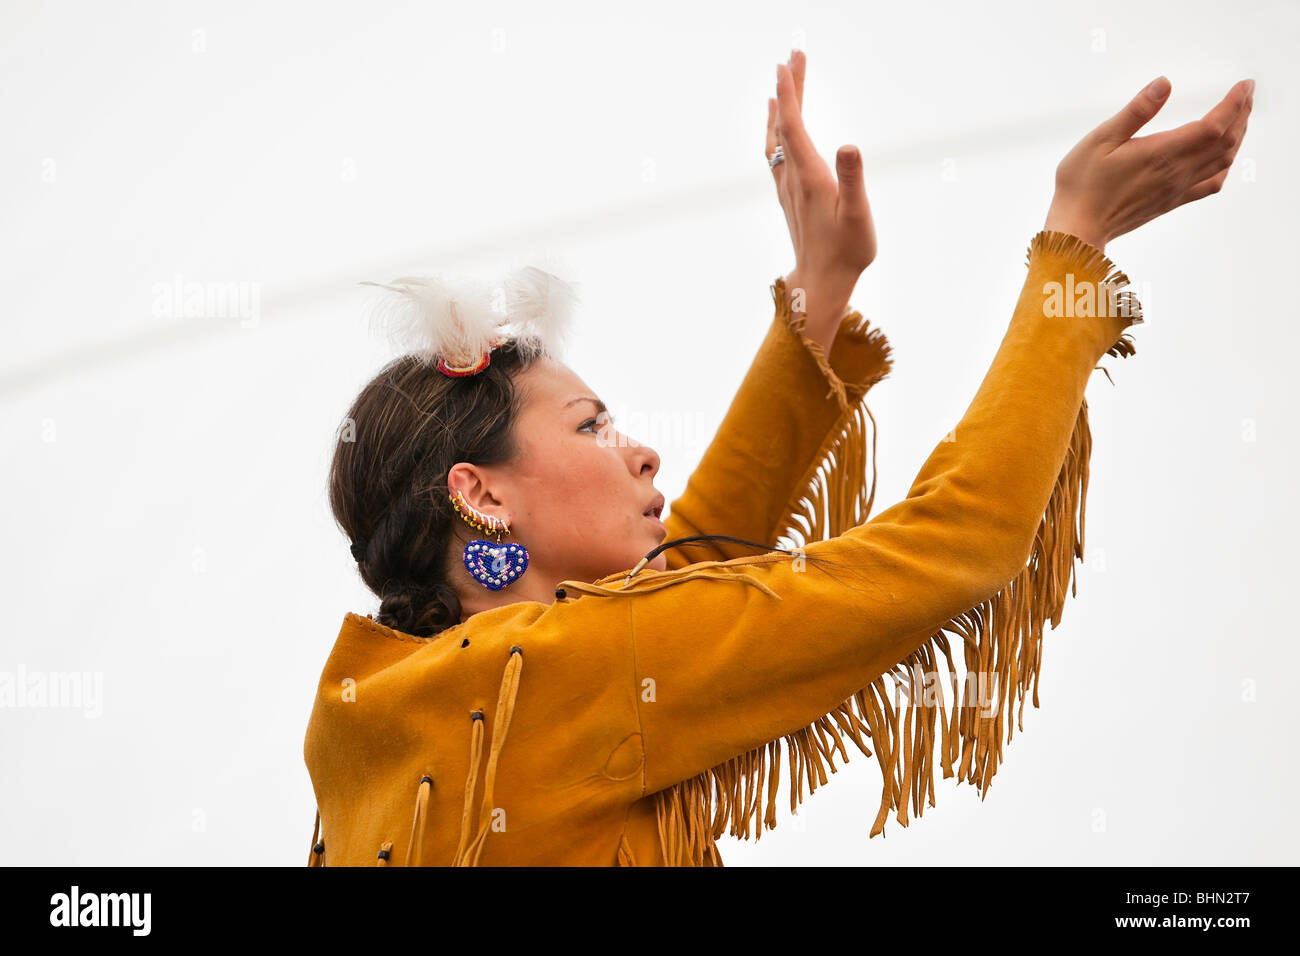 Native Canadian woman dancer, Festival du Voyageur, Winnipeg, Manitoba Canada. - Stock Image